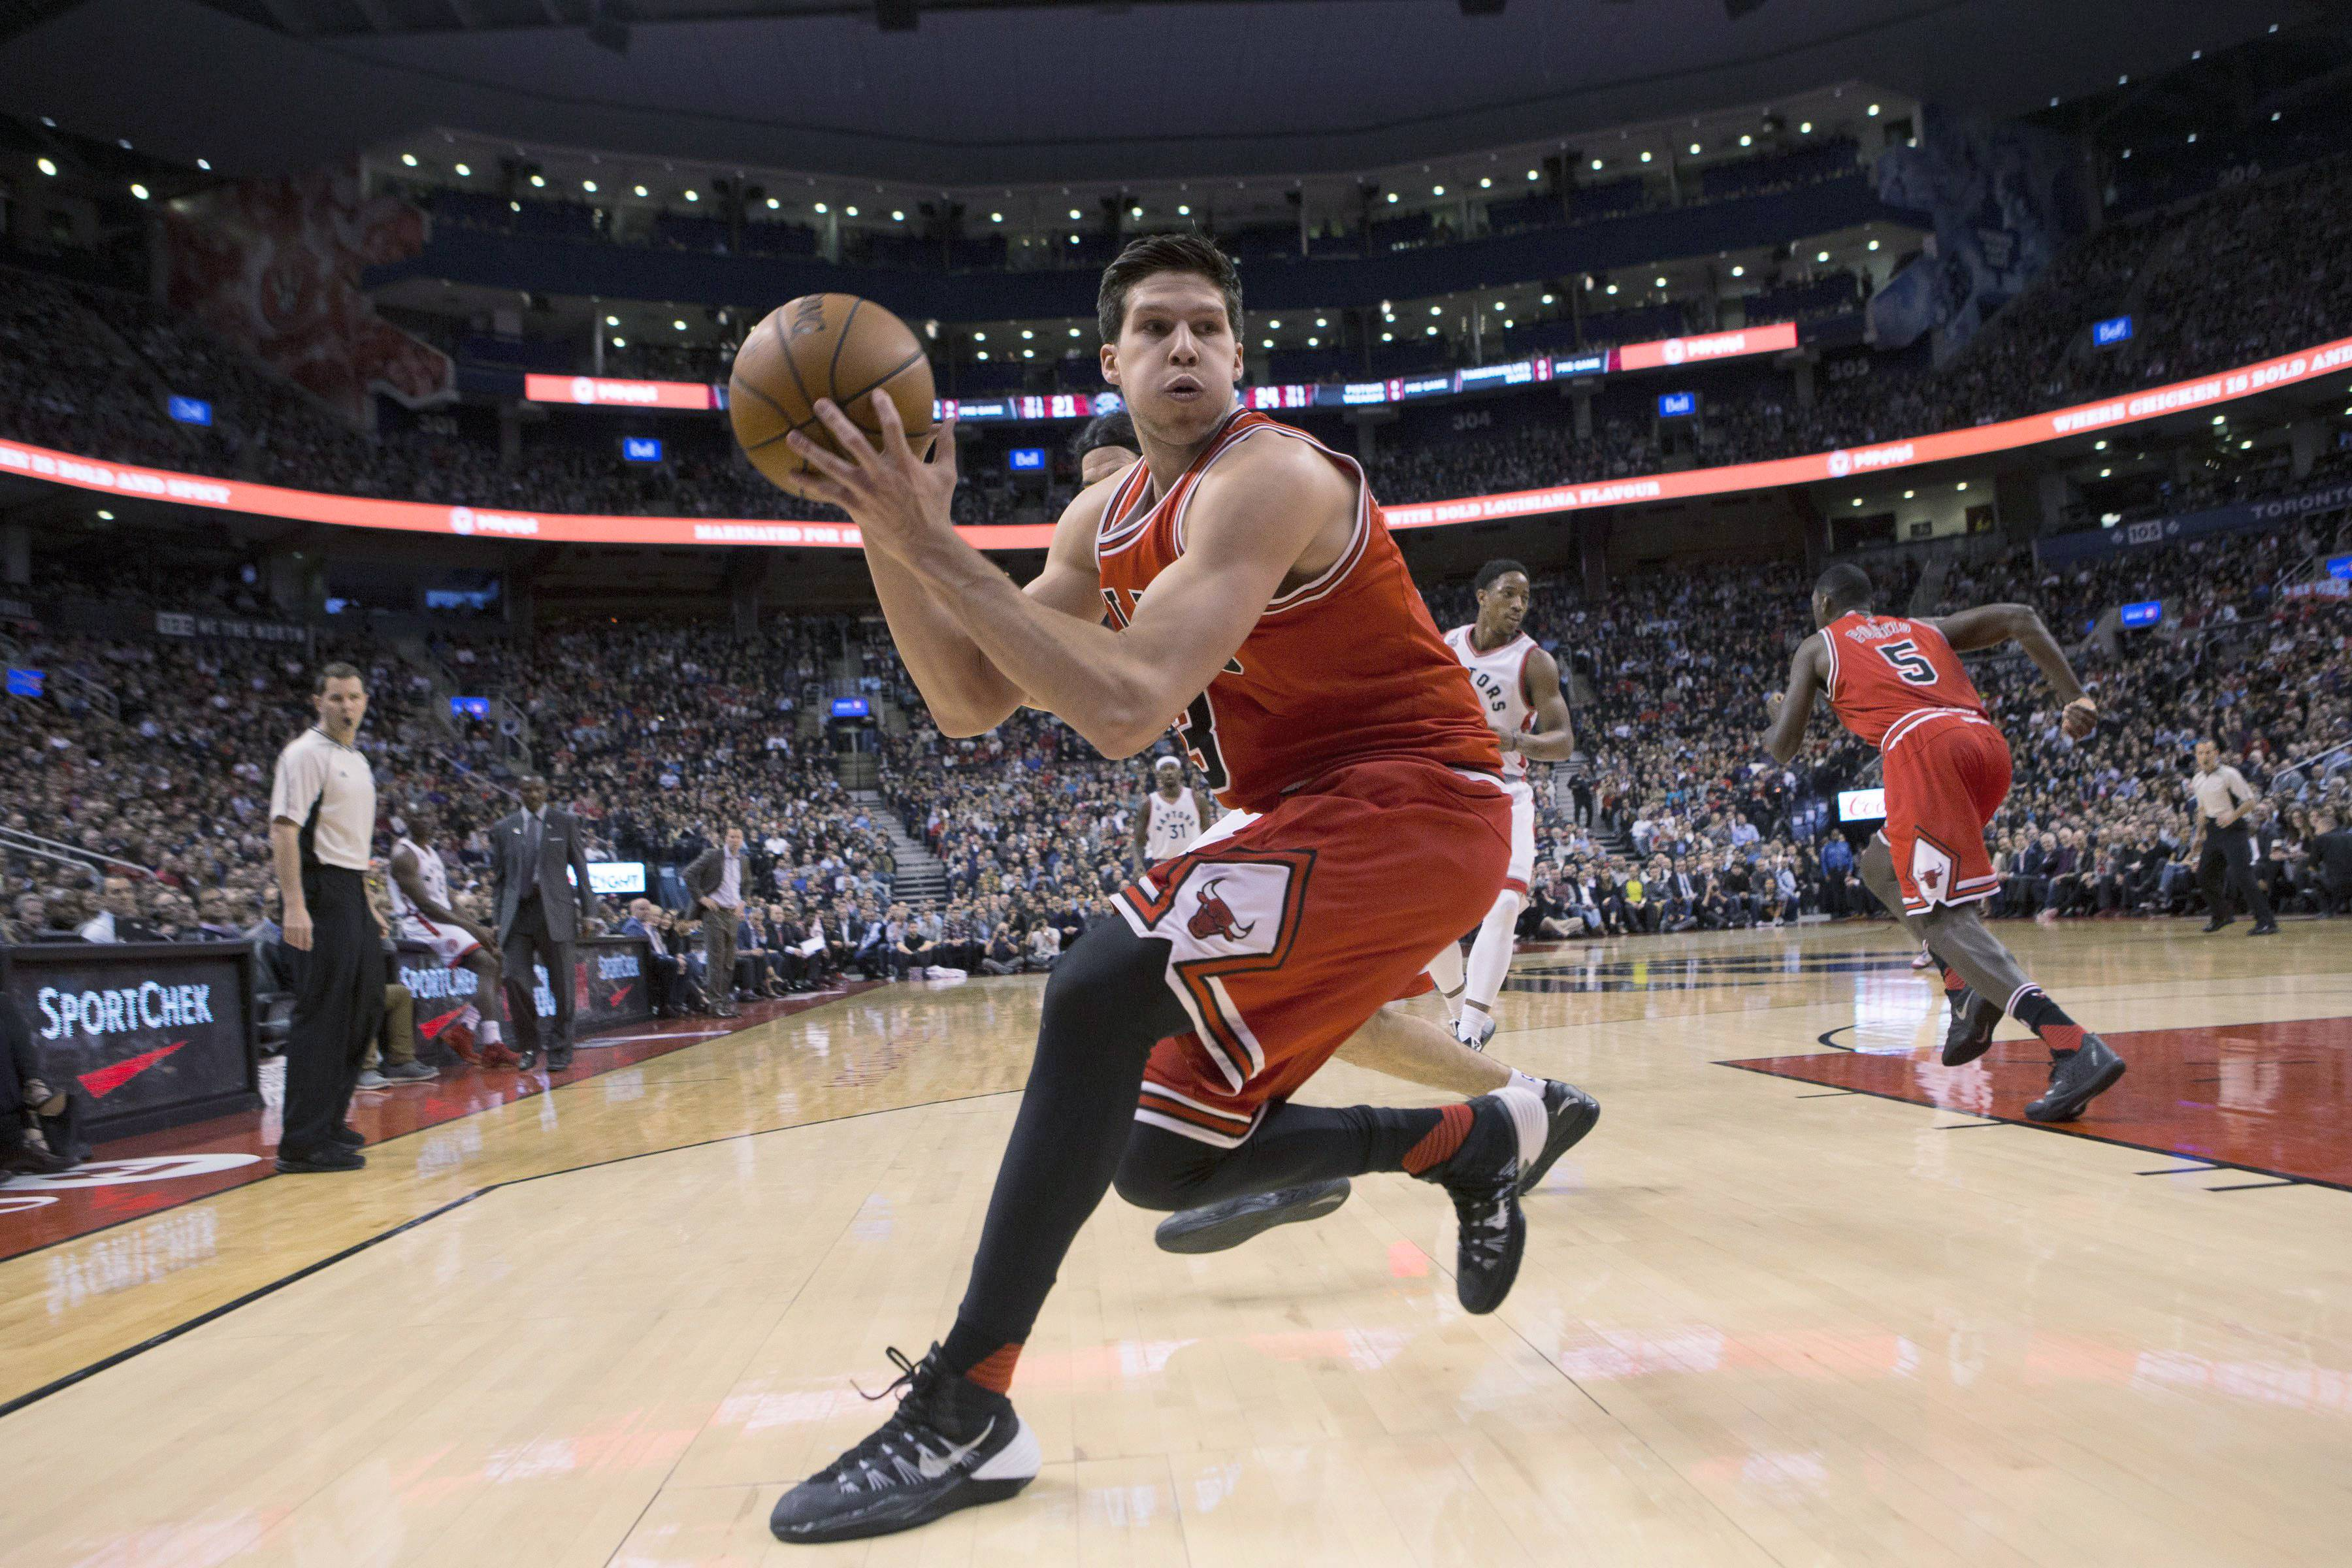 Associated press Bulls forward Doug McDermott didn't experience much roster turnover during his first two seasons with the team. Now that the Bulls have eight newcomers,the third-year forward talked about what it's been like with so many new faces.